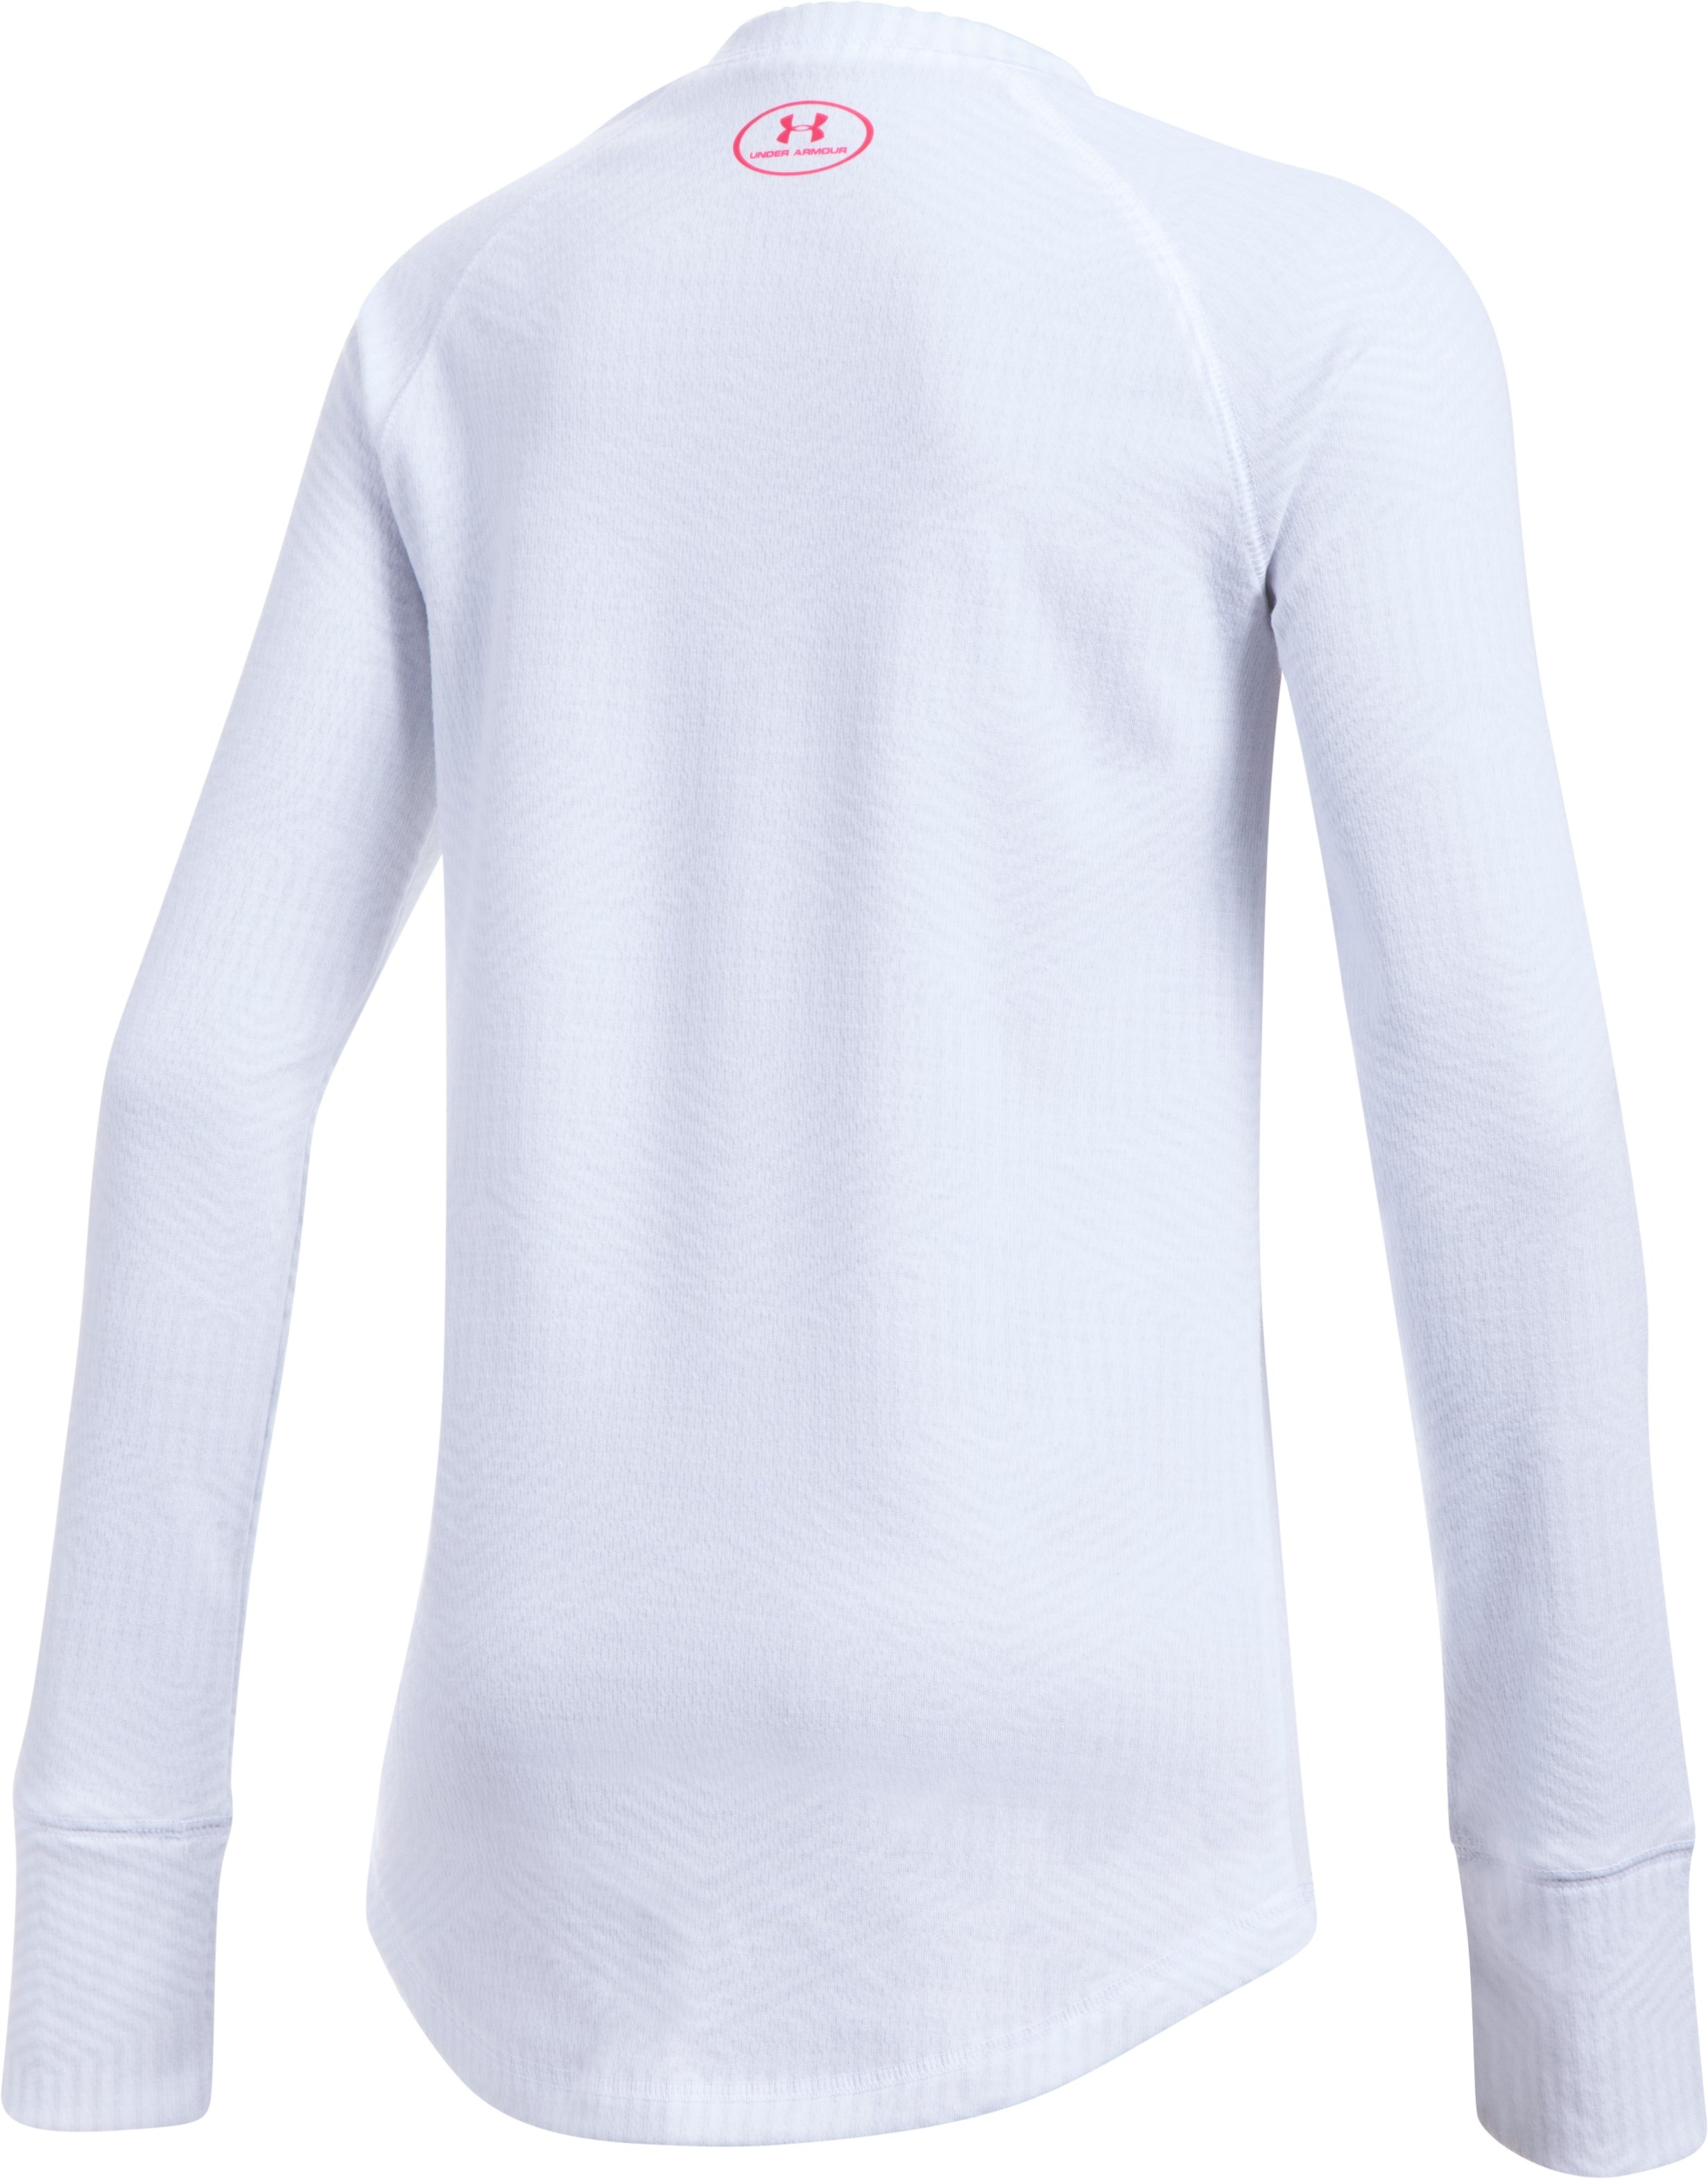 Girls' ColdGear® Infrared Knit Long Sleeve, White,